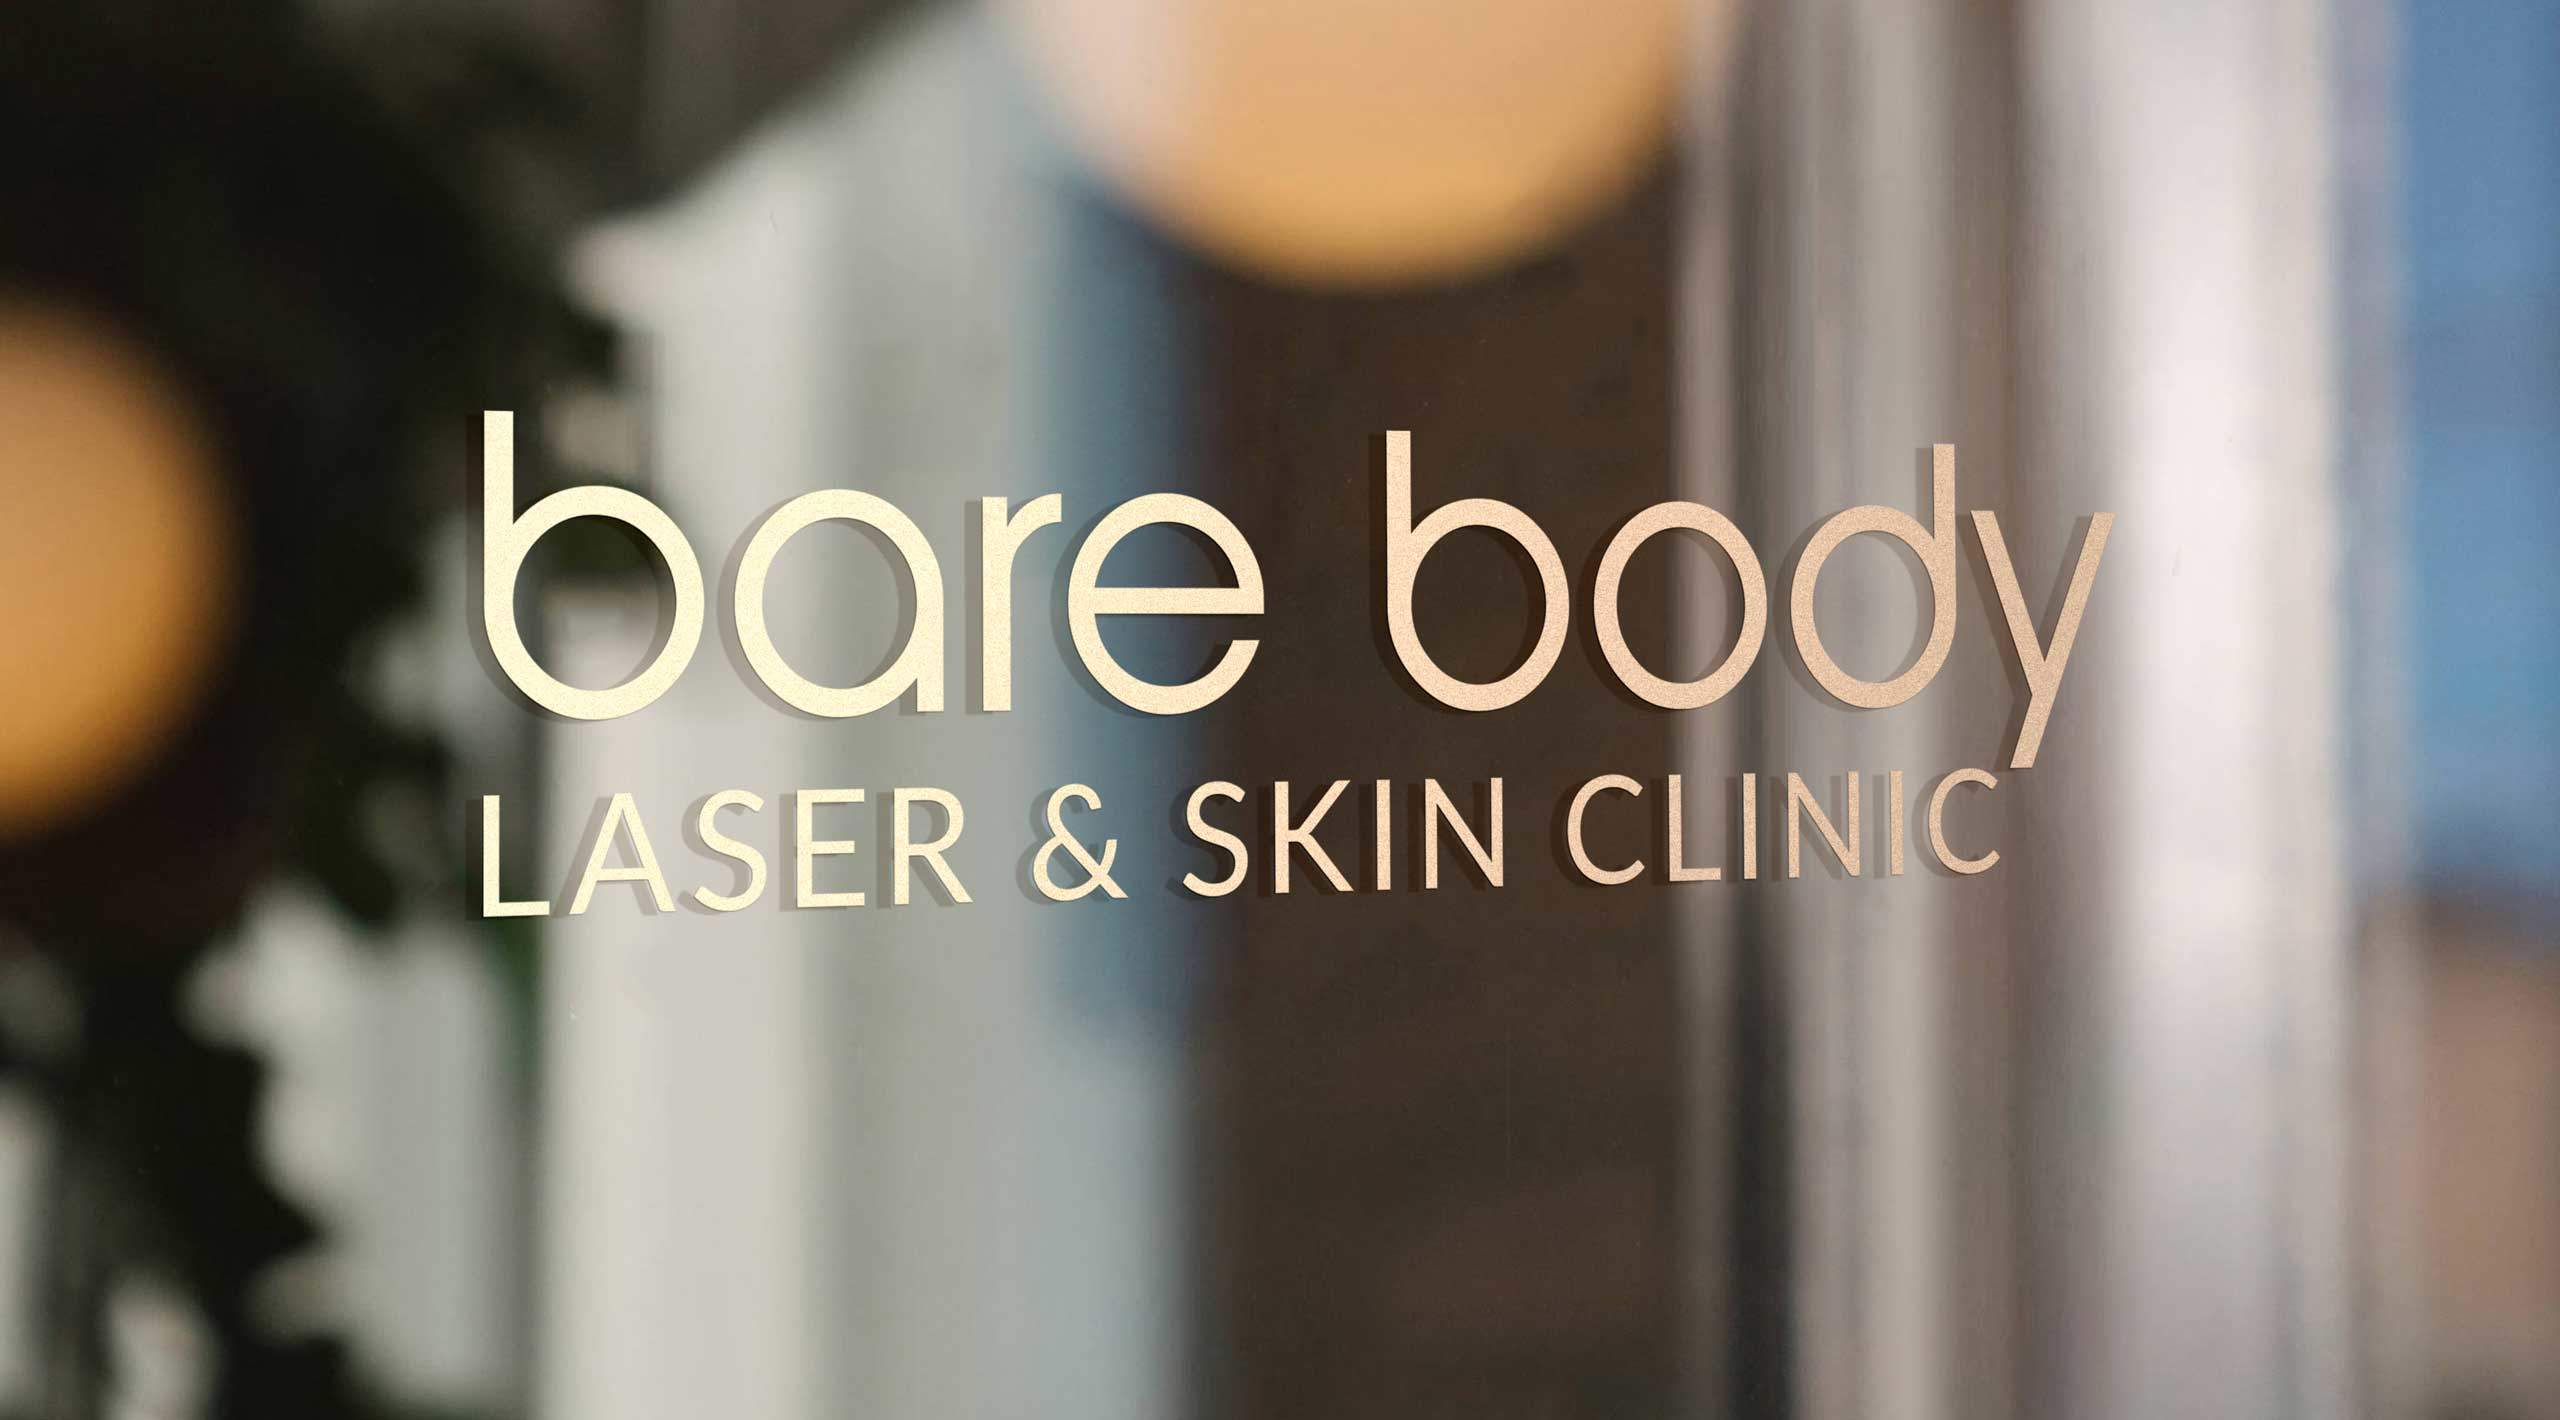 bare body window signage